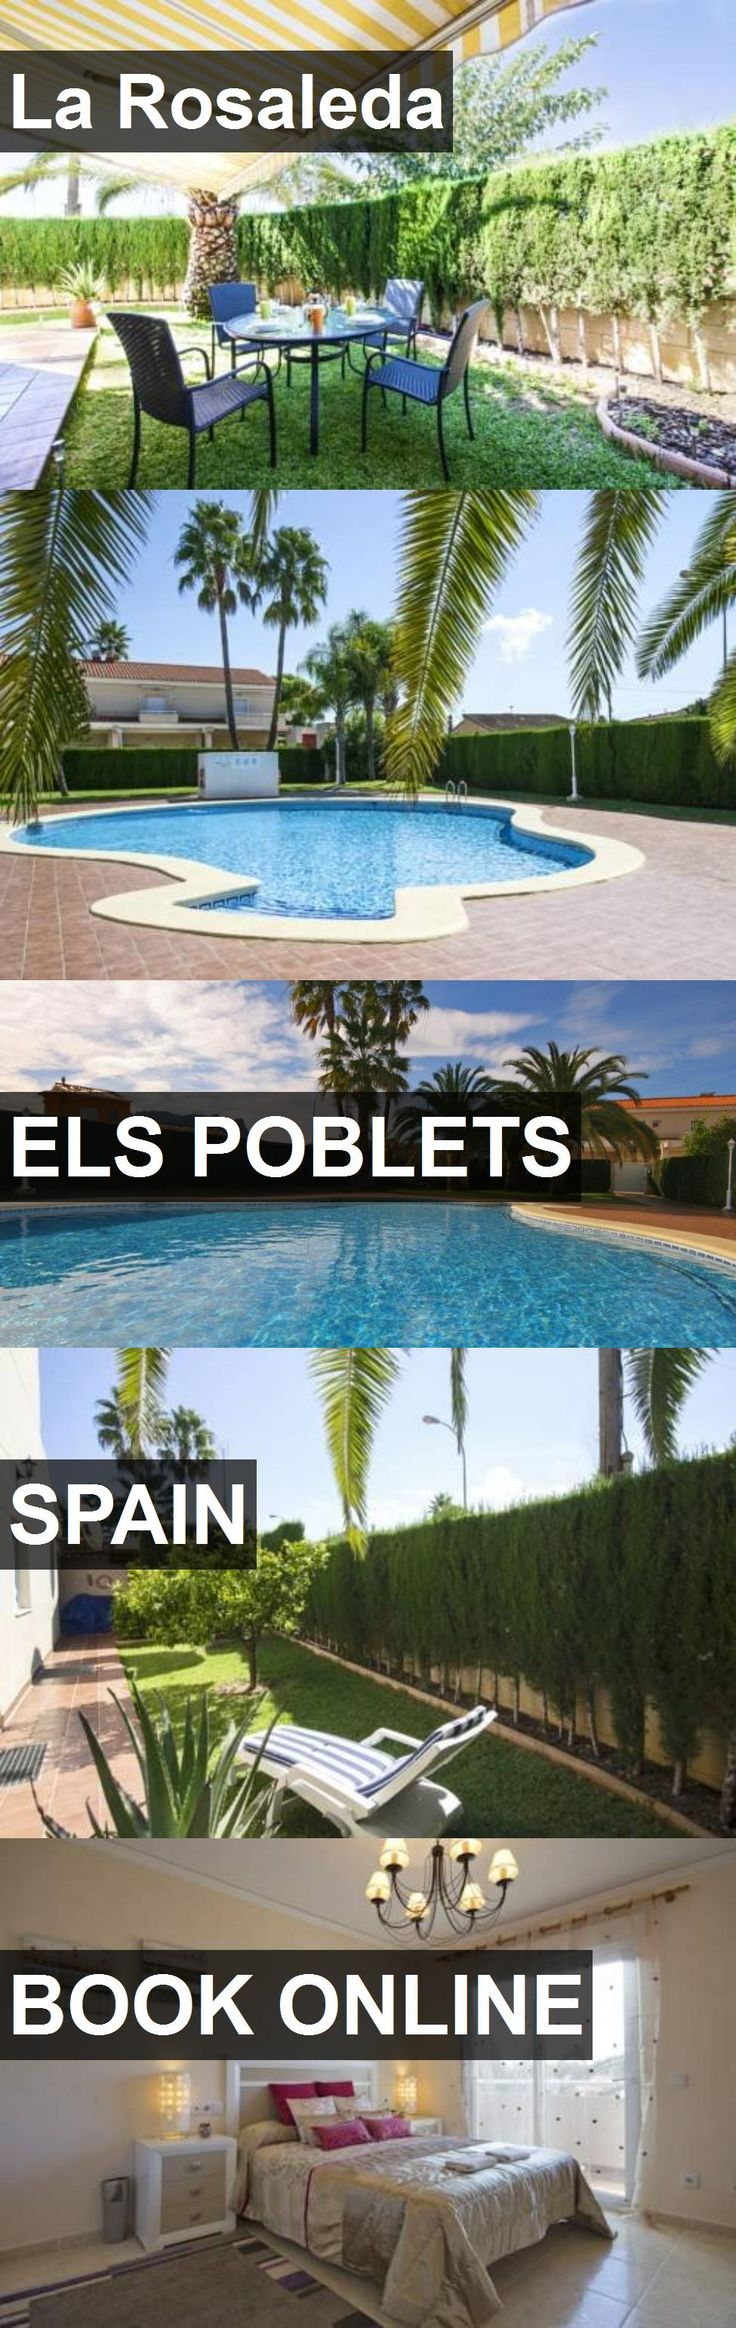 Hotel La Rosaleda in Els Poblets, Spain. For more information, photos, reviews and best prices please follow the link. #Spain #ElsPoblets #travel #vacation #hotel